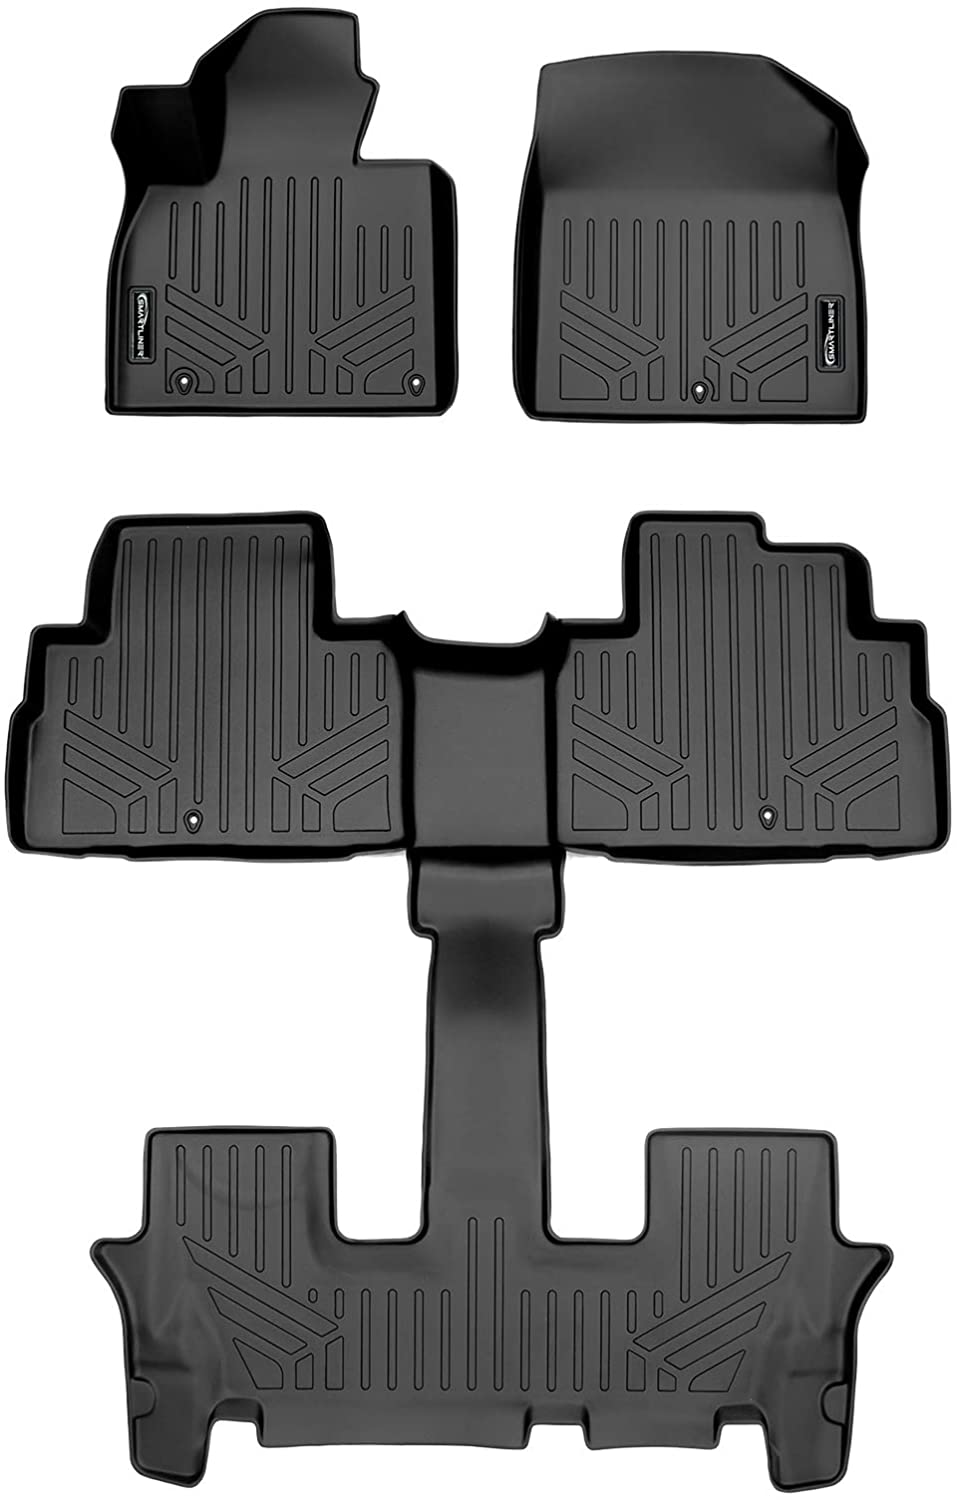 SMARTLINER SA0417//B0447 for 2020 Kia Telluride Only Fits with 2nd Row Bucket Seats Without Center Console Black